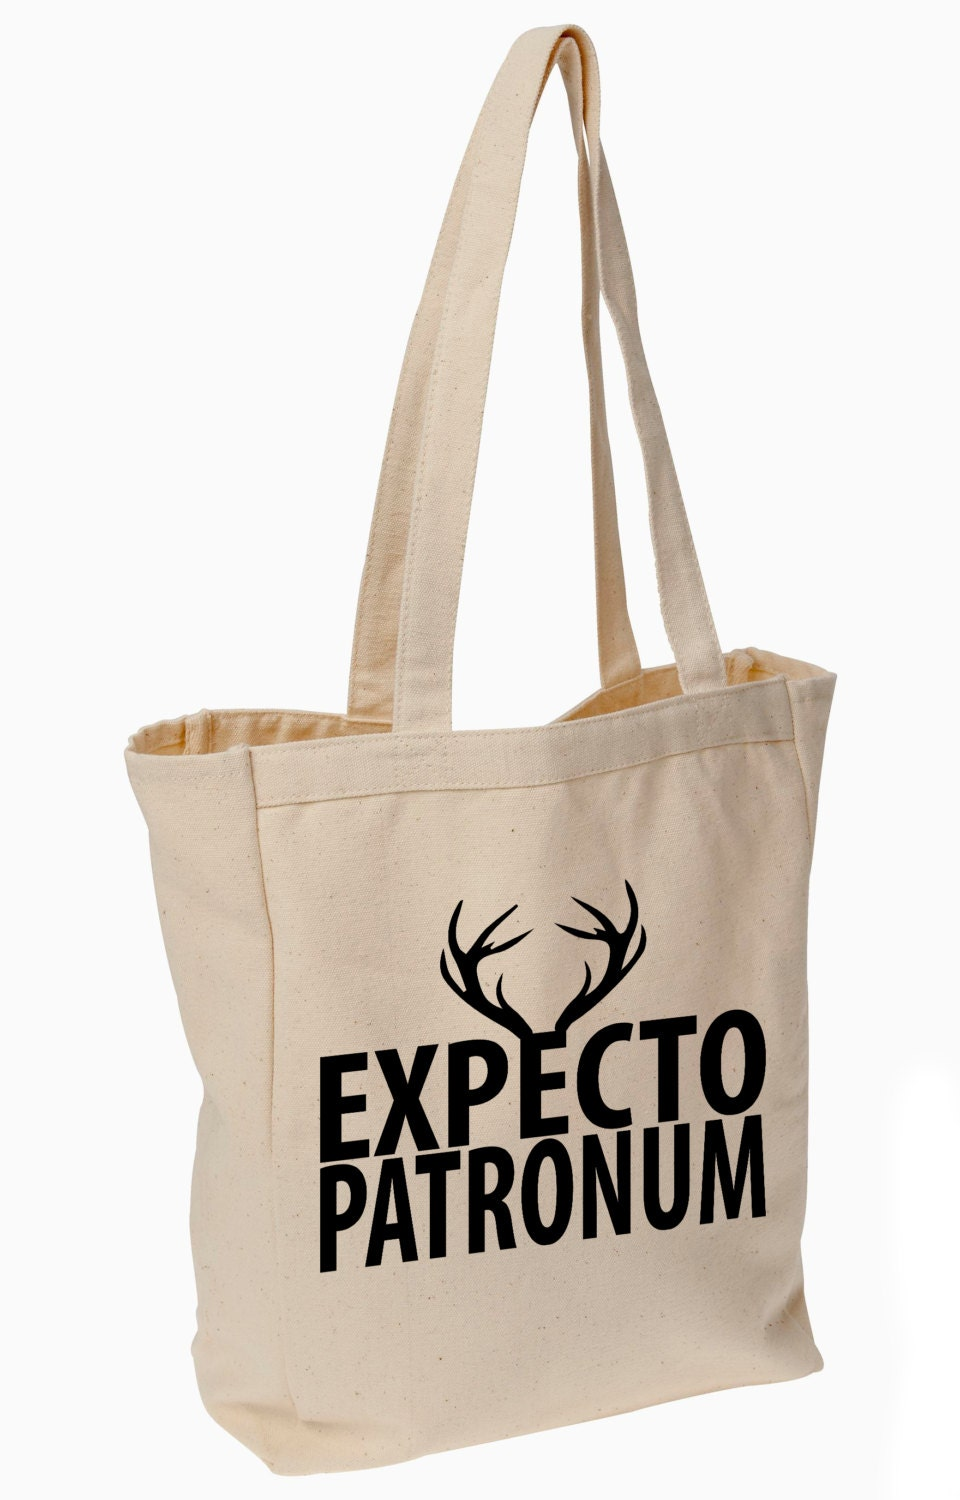 expecto patronum harry potter tote bag. Black Bedroom Furniture Sets. Home Design Ideas